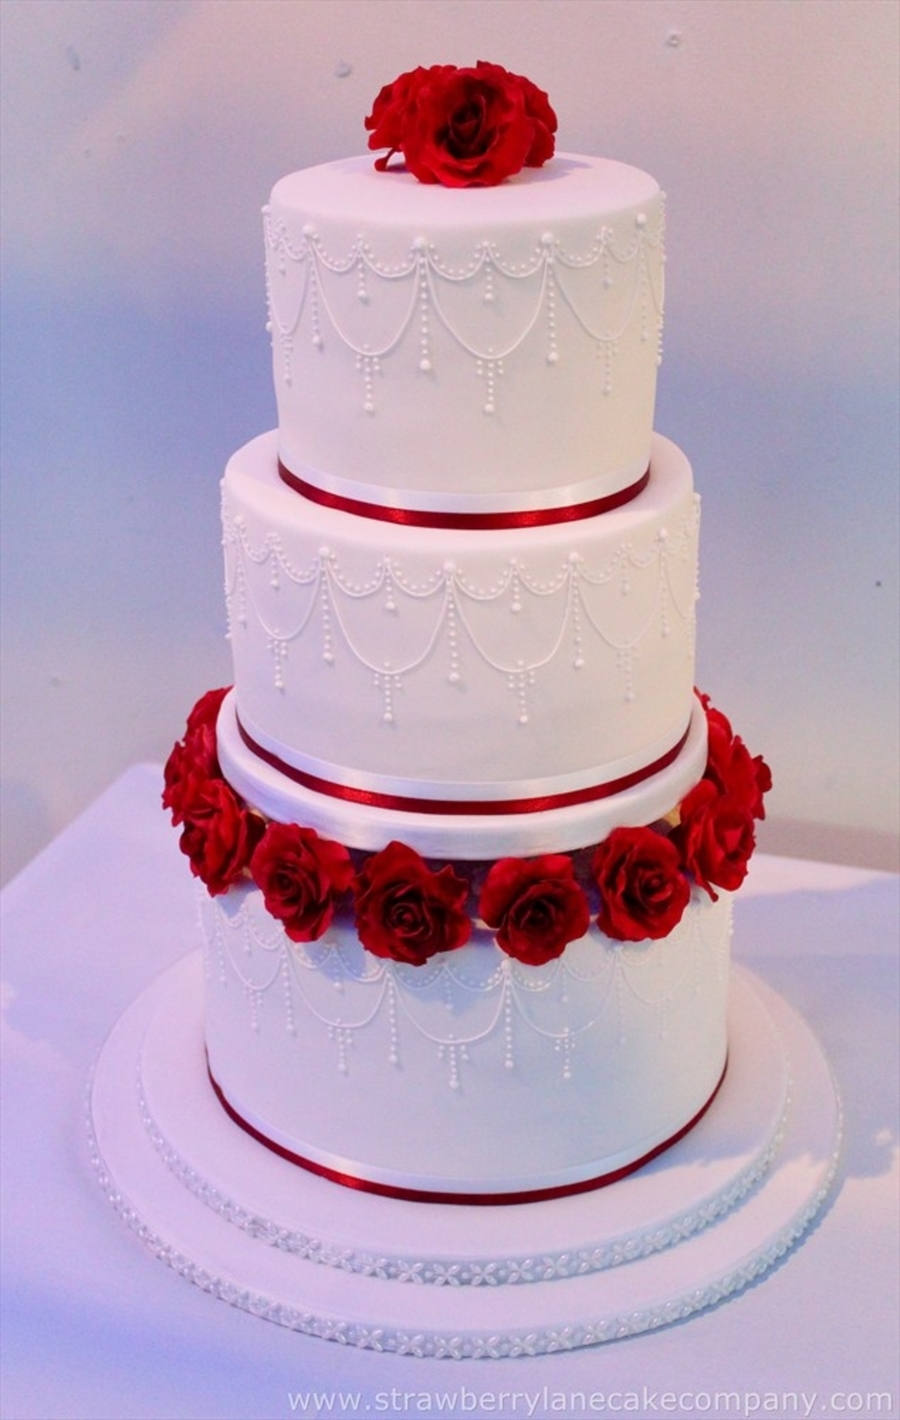 roses and piped detail 3 tier wedding cake - cakecentral